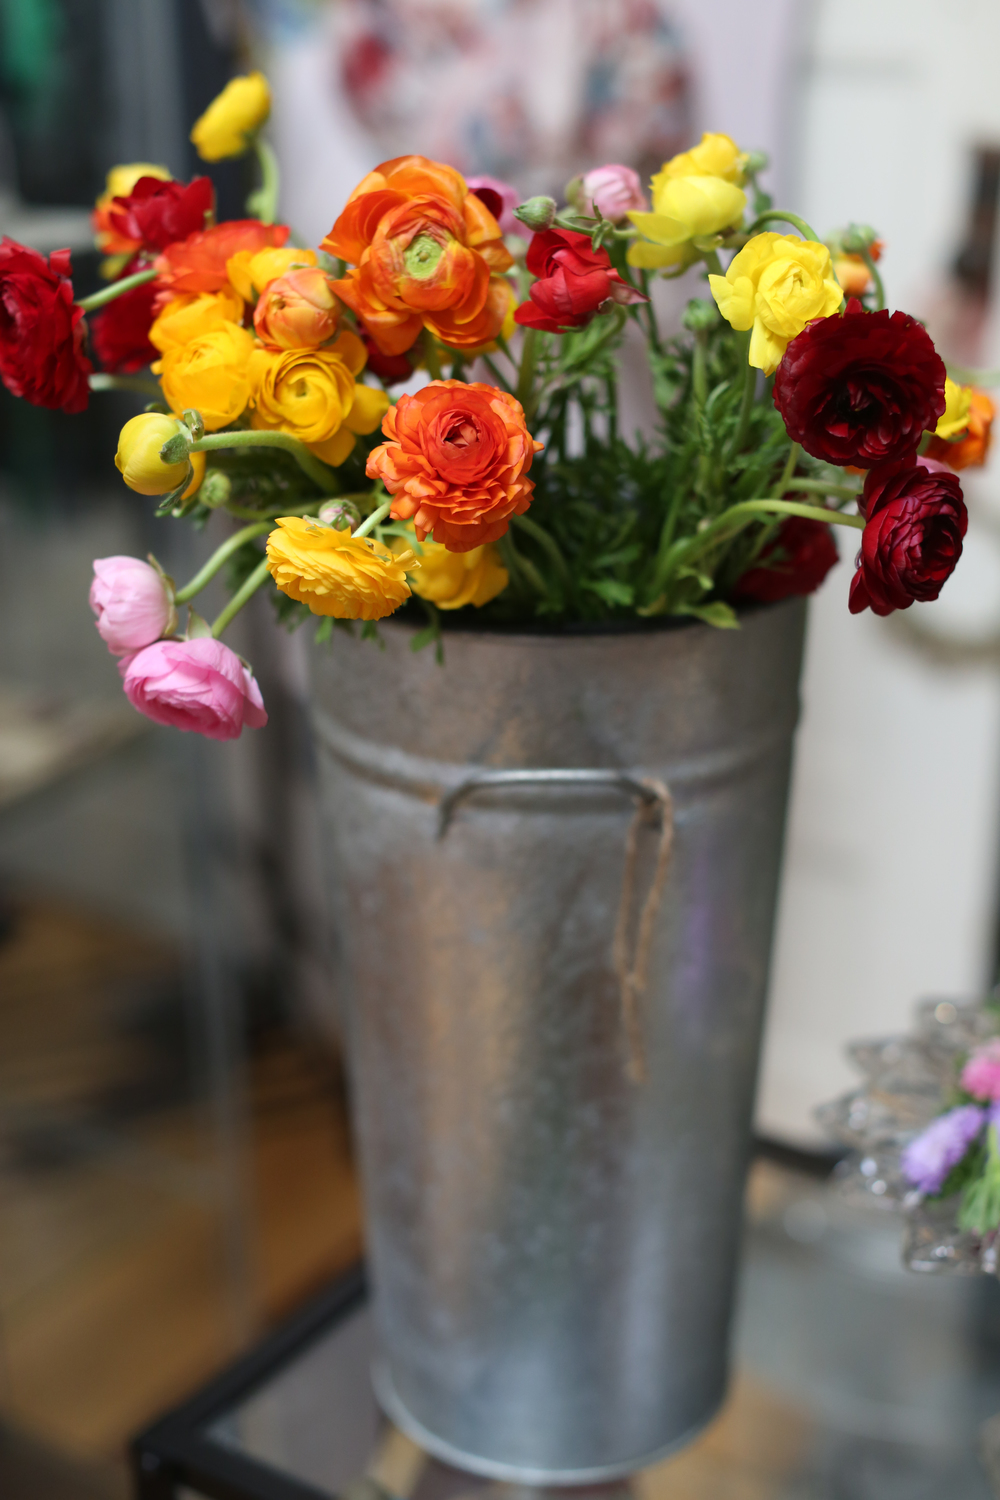 Flowers in buckets 2.jpg